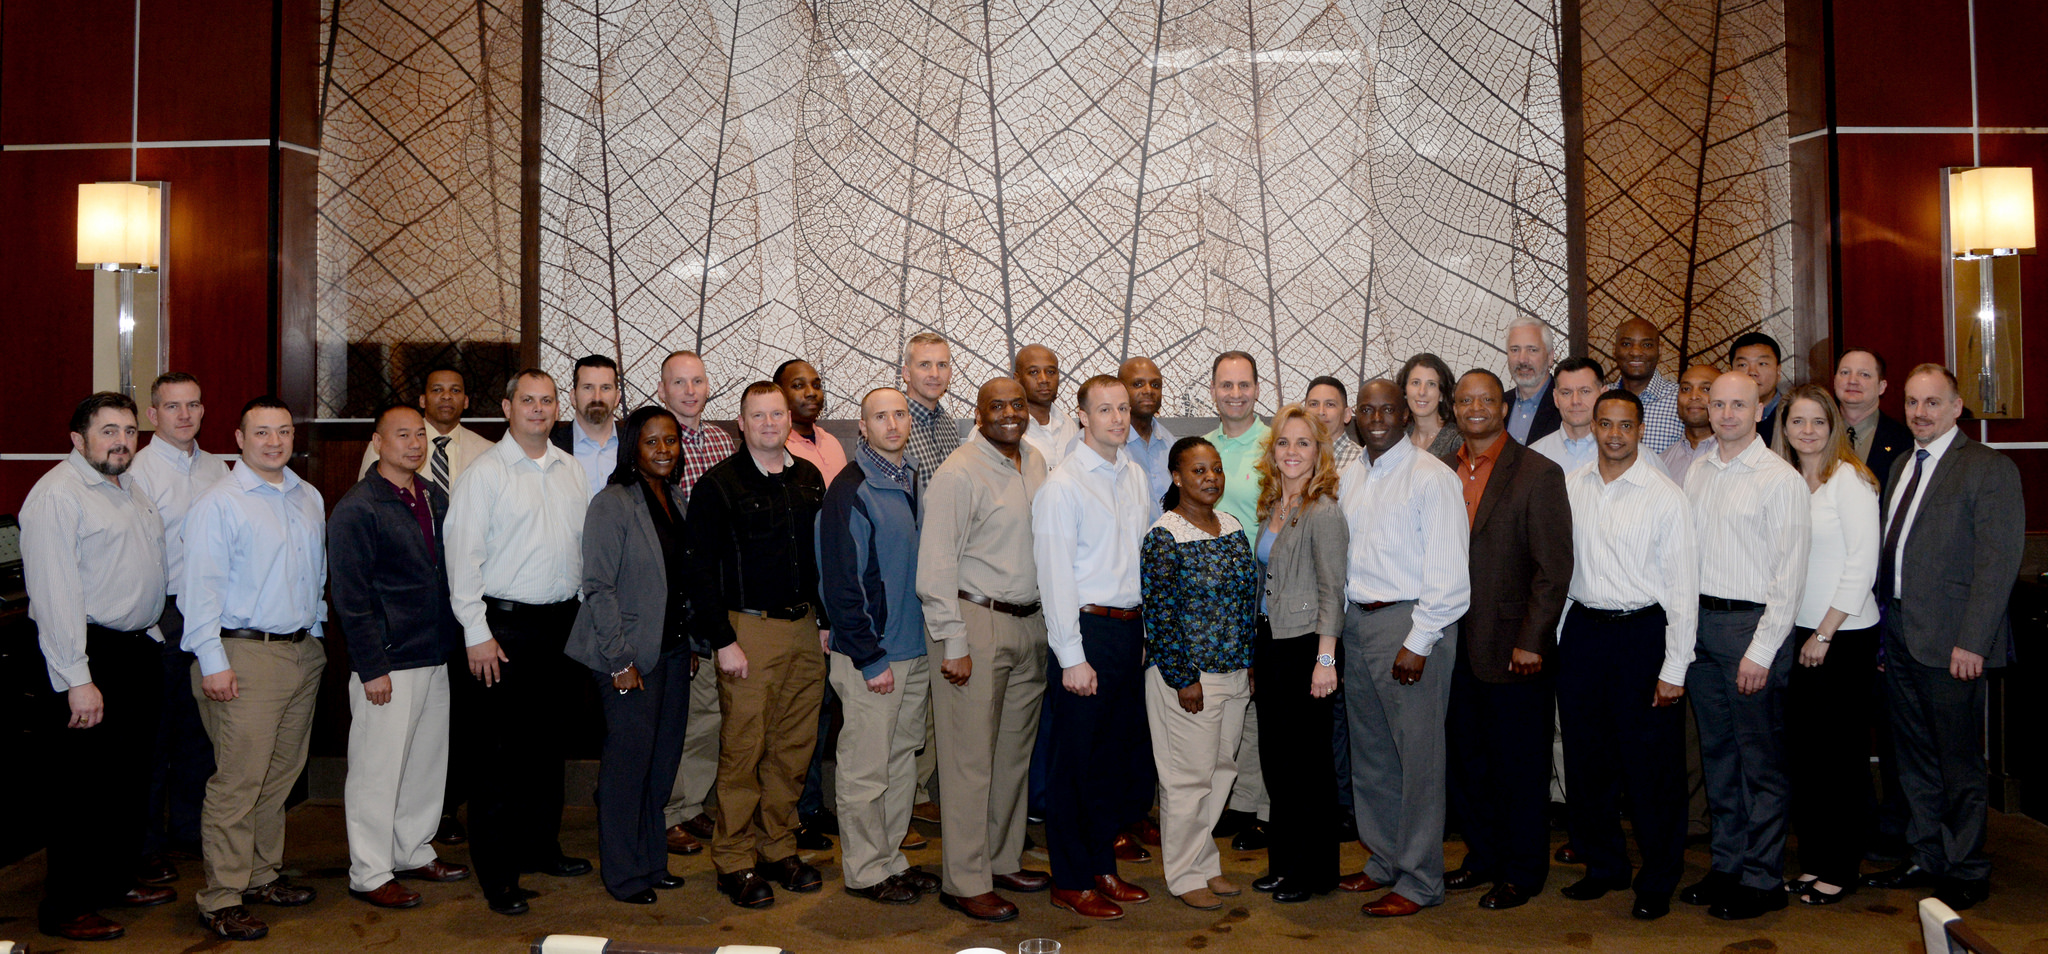 In April, 35 leaders from across the Army acquisition community participated in the fifth AALPC in Arlington, Virginia.